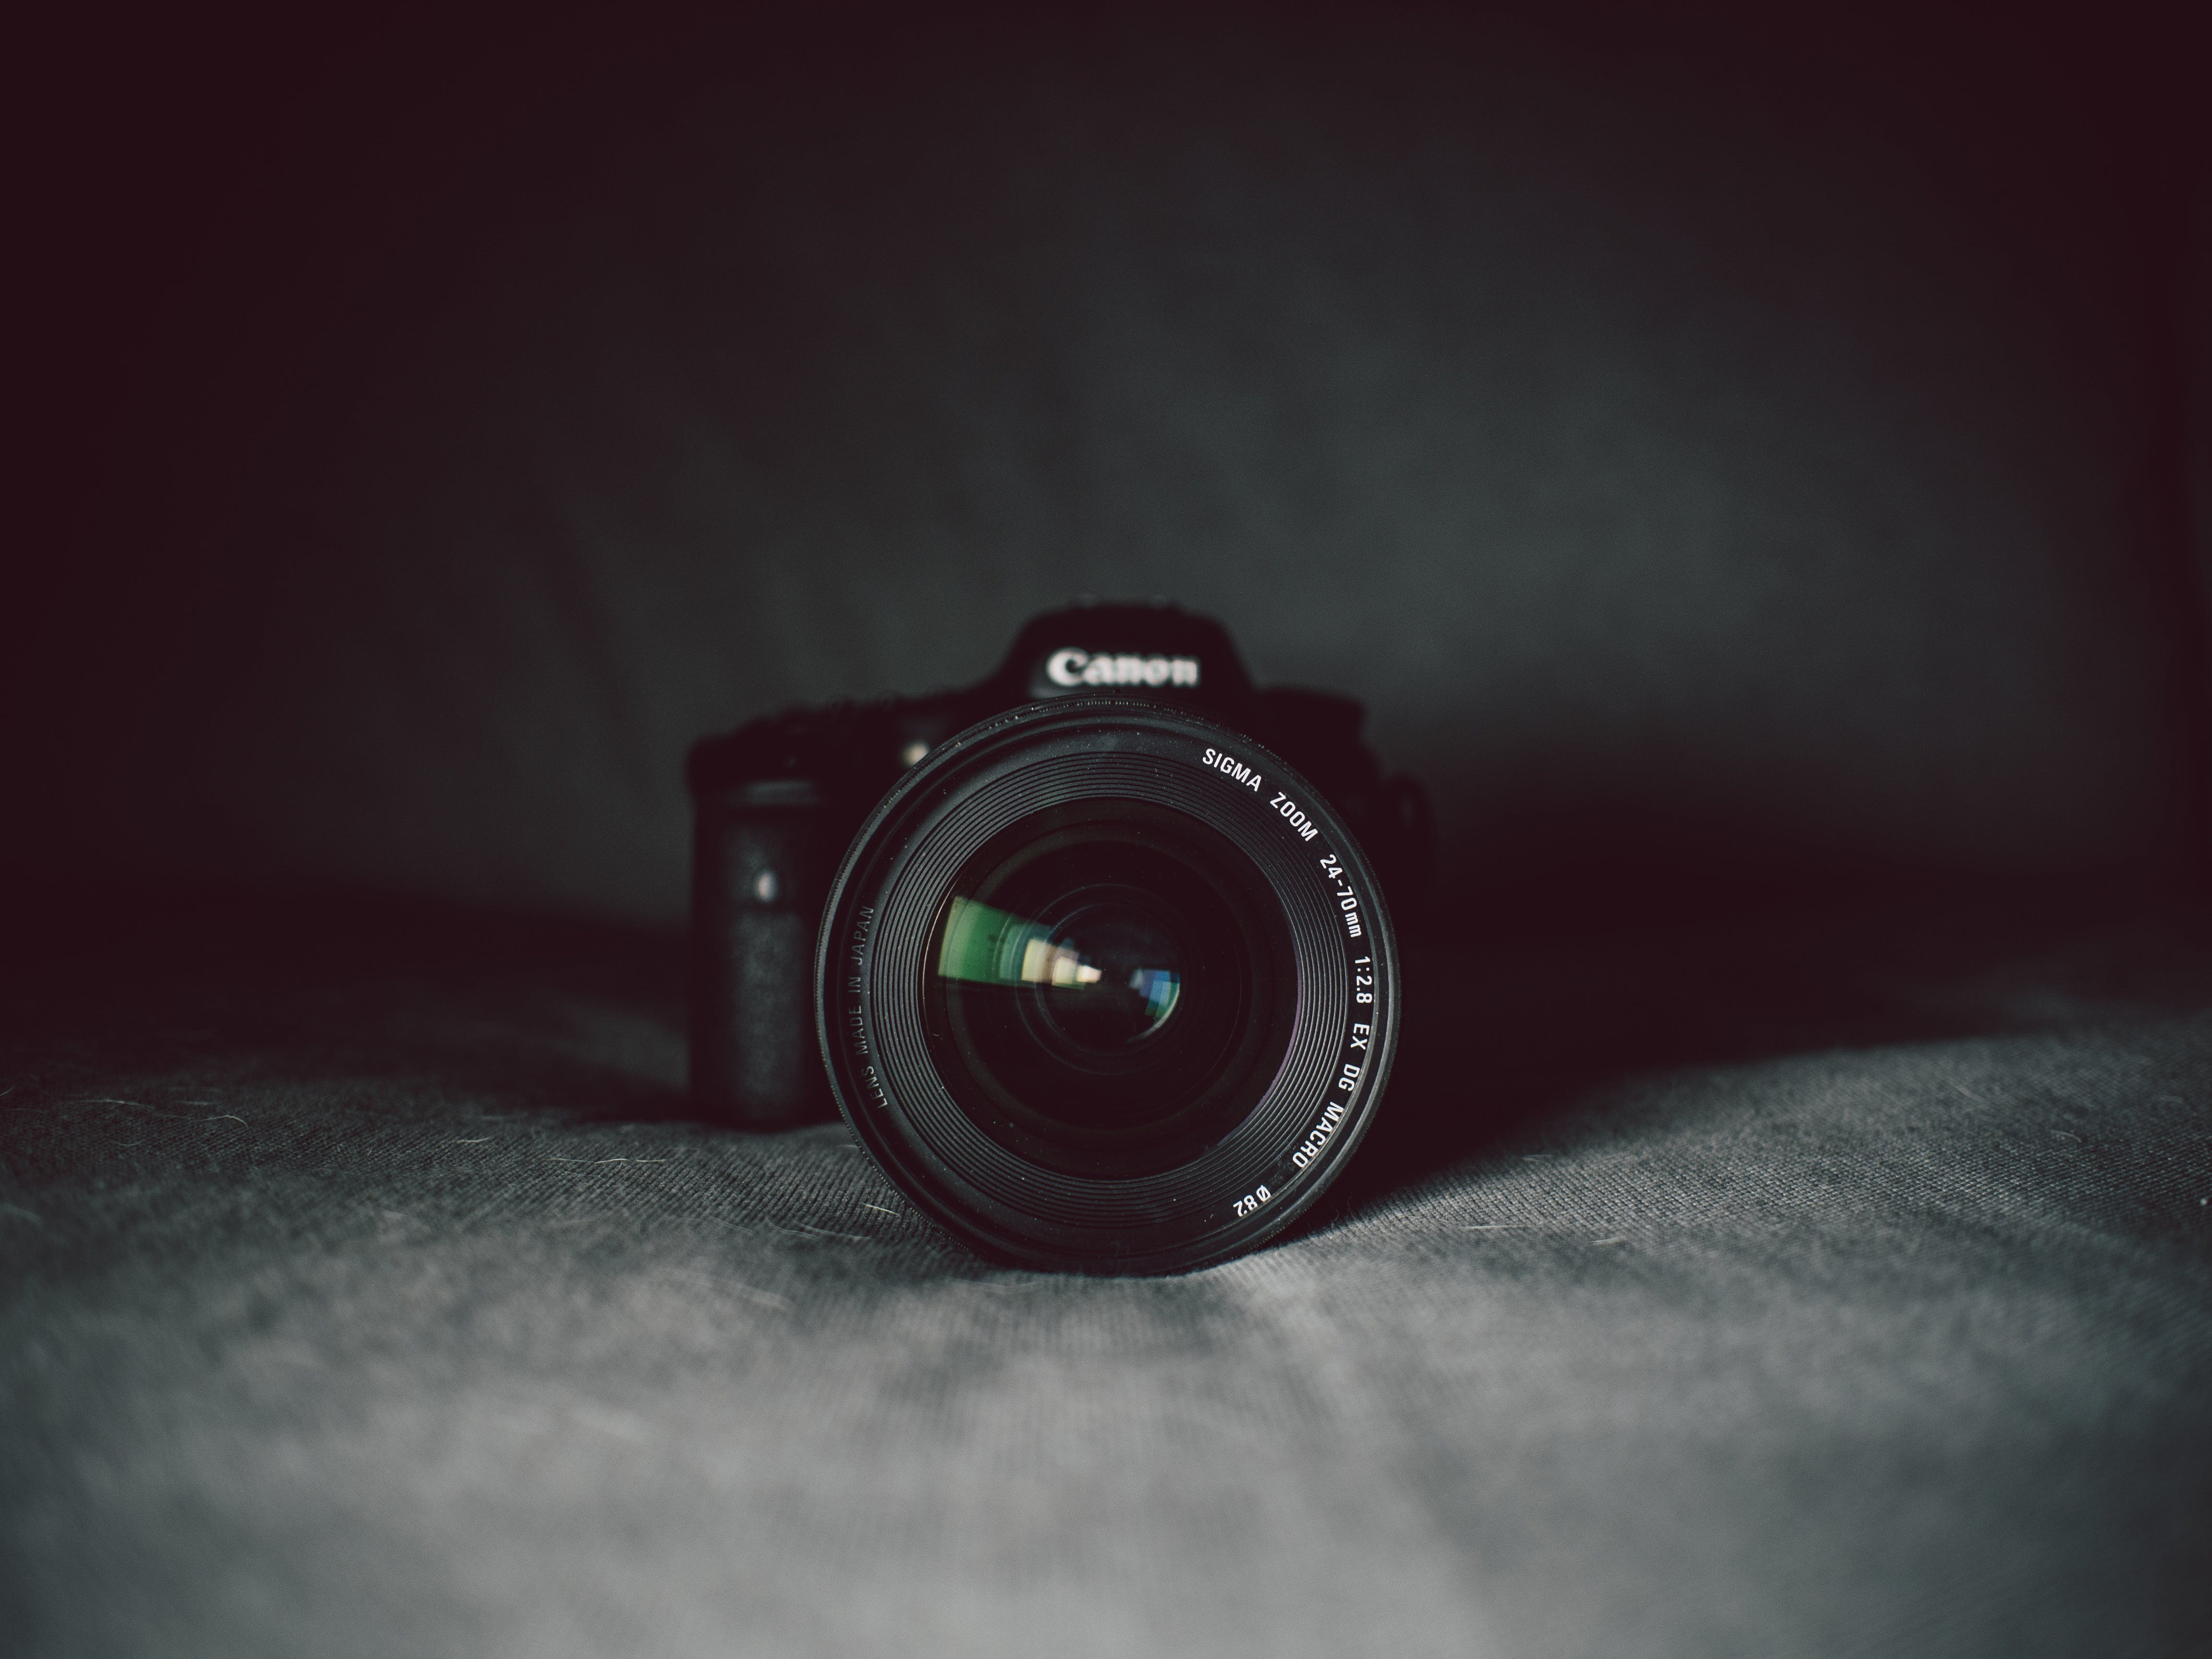 Free stock photo of camera, photography, technology, lens